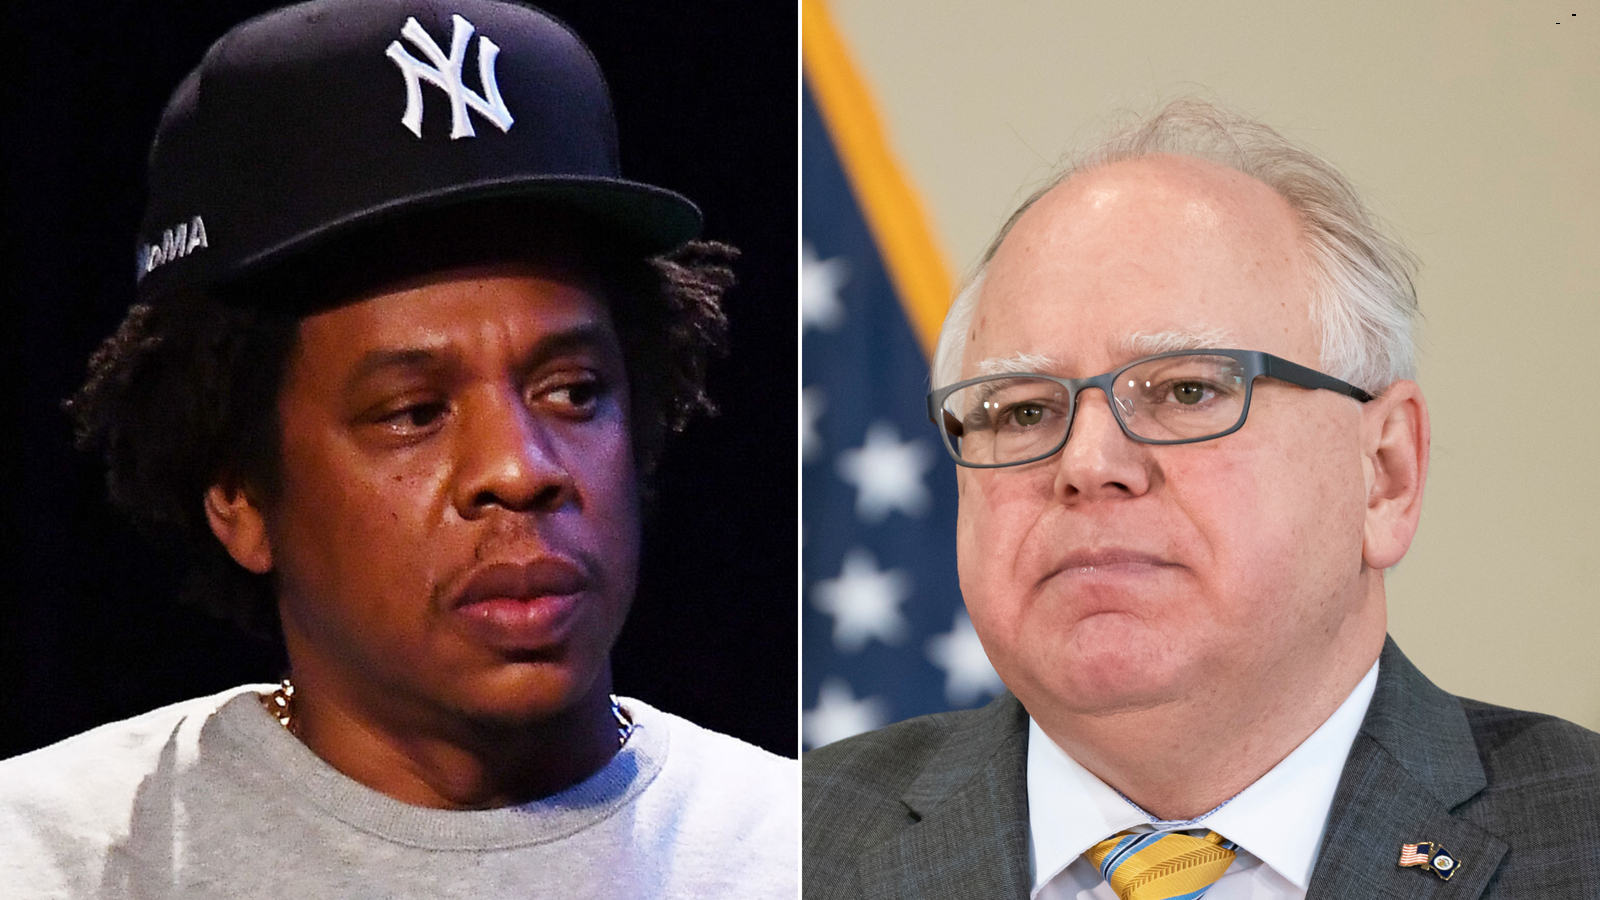 Jay-Z speaks out after calling Minnesota governor to discuss justice for George Floyd